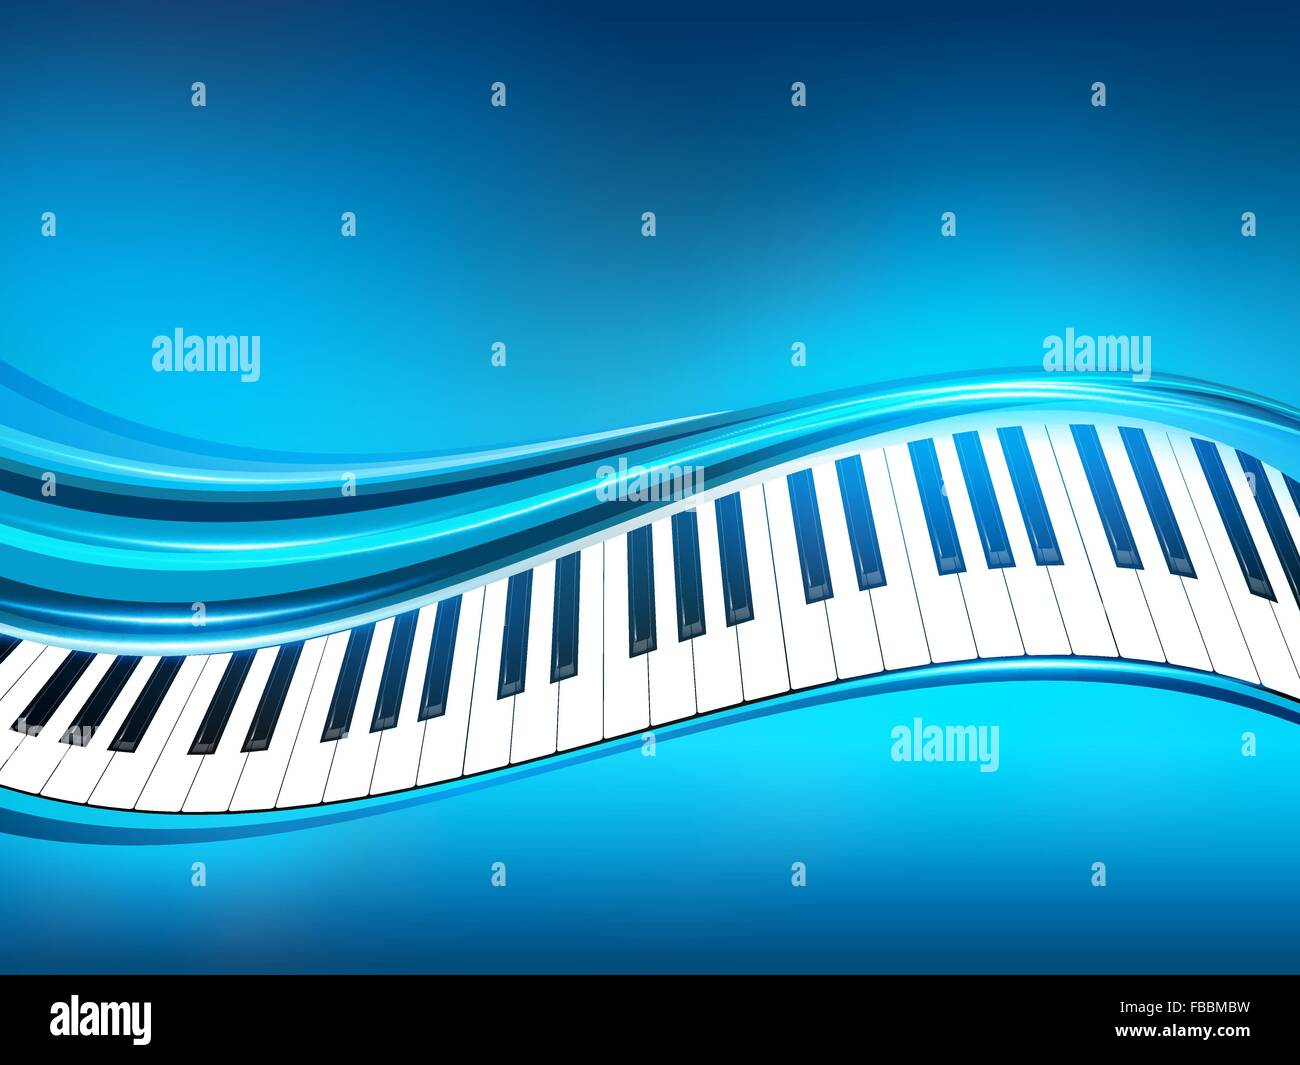 Blue Piano Background Vector Abstract Illustration EPS10